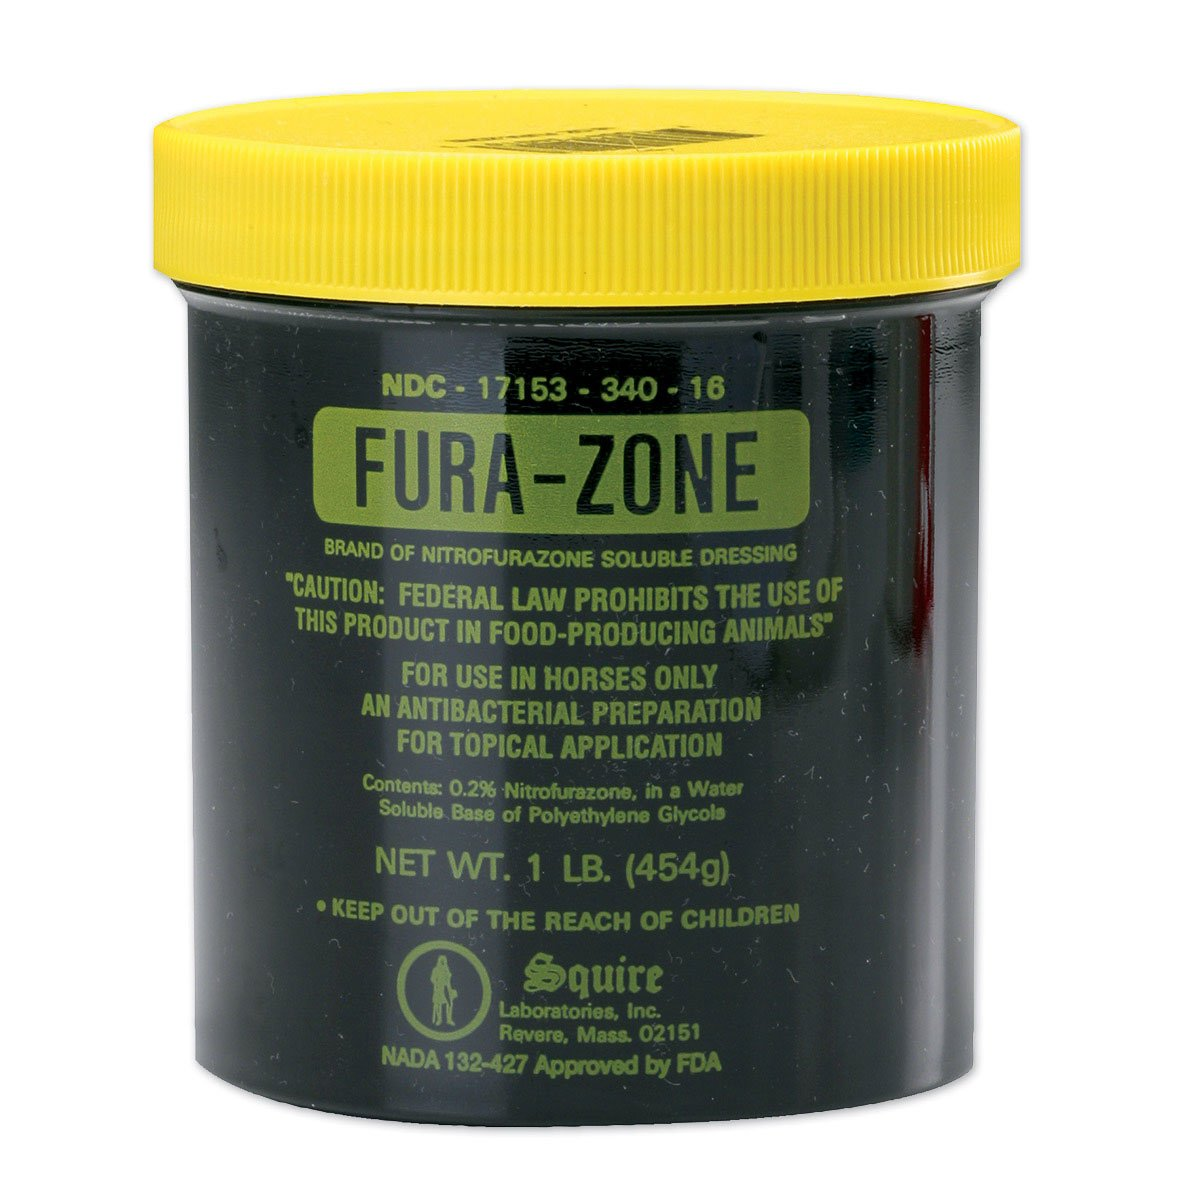 VAN NESS PLASTIC MOLDING Fura-Zone Ointment for Horses, 1 Pound Container by VAN NESS PLASTIC MOLDING